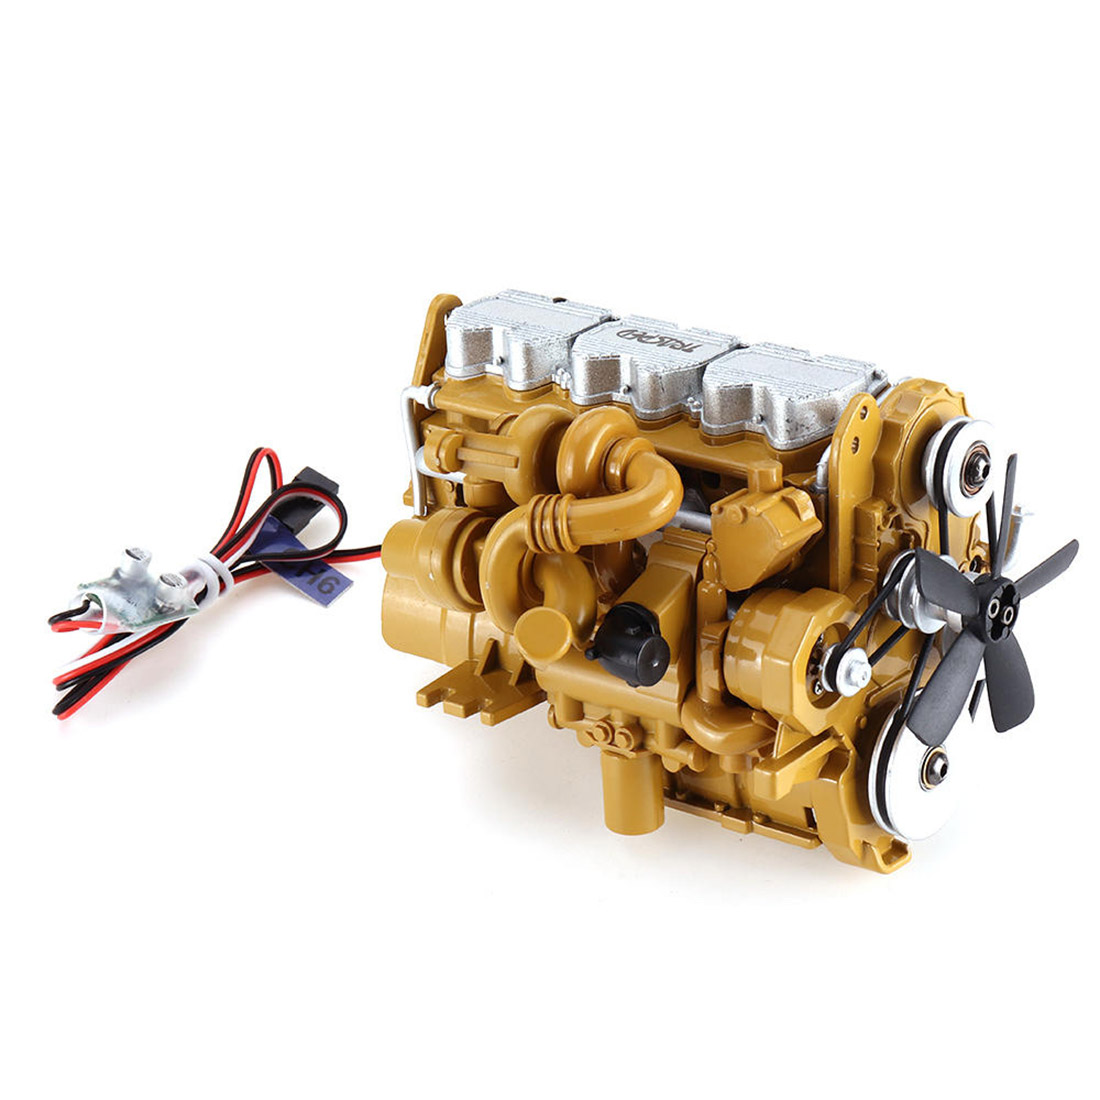 Zinc Alloy Diesel Engine For HG-P602 RC Car Model